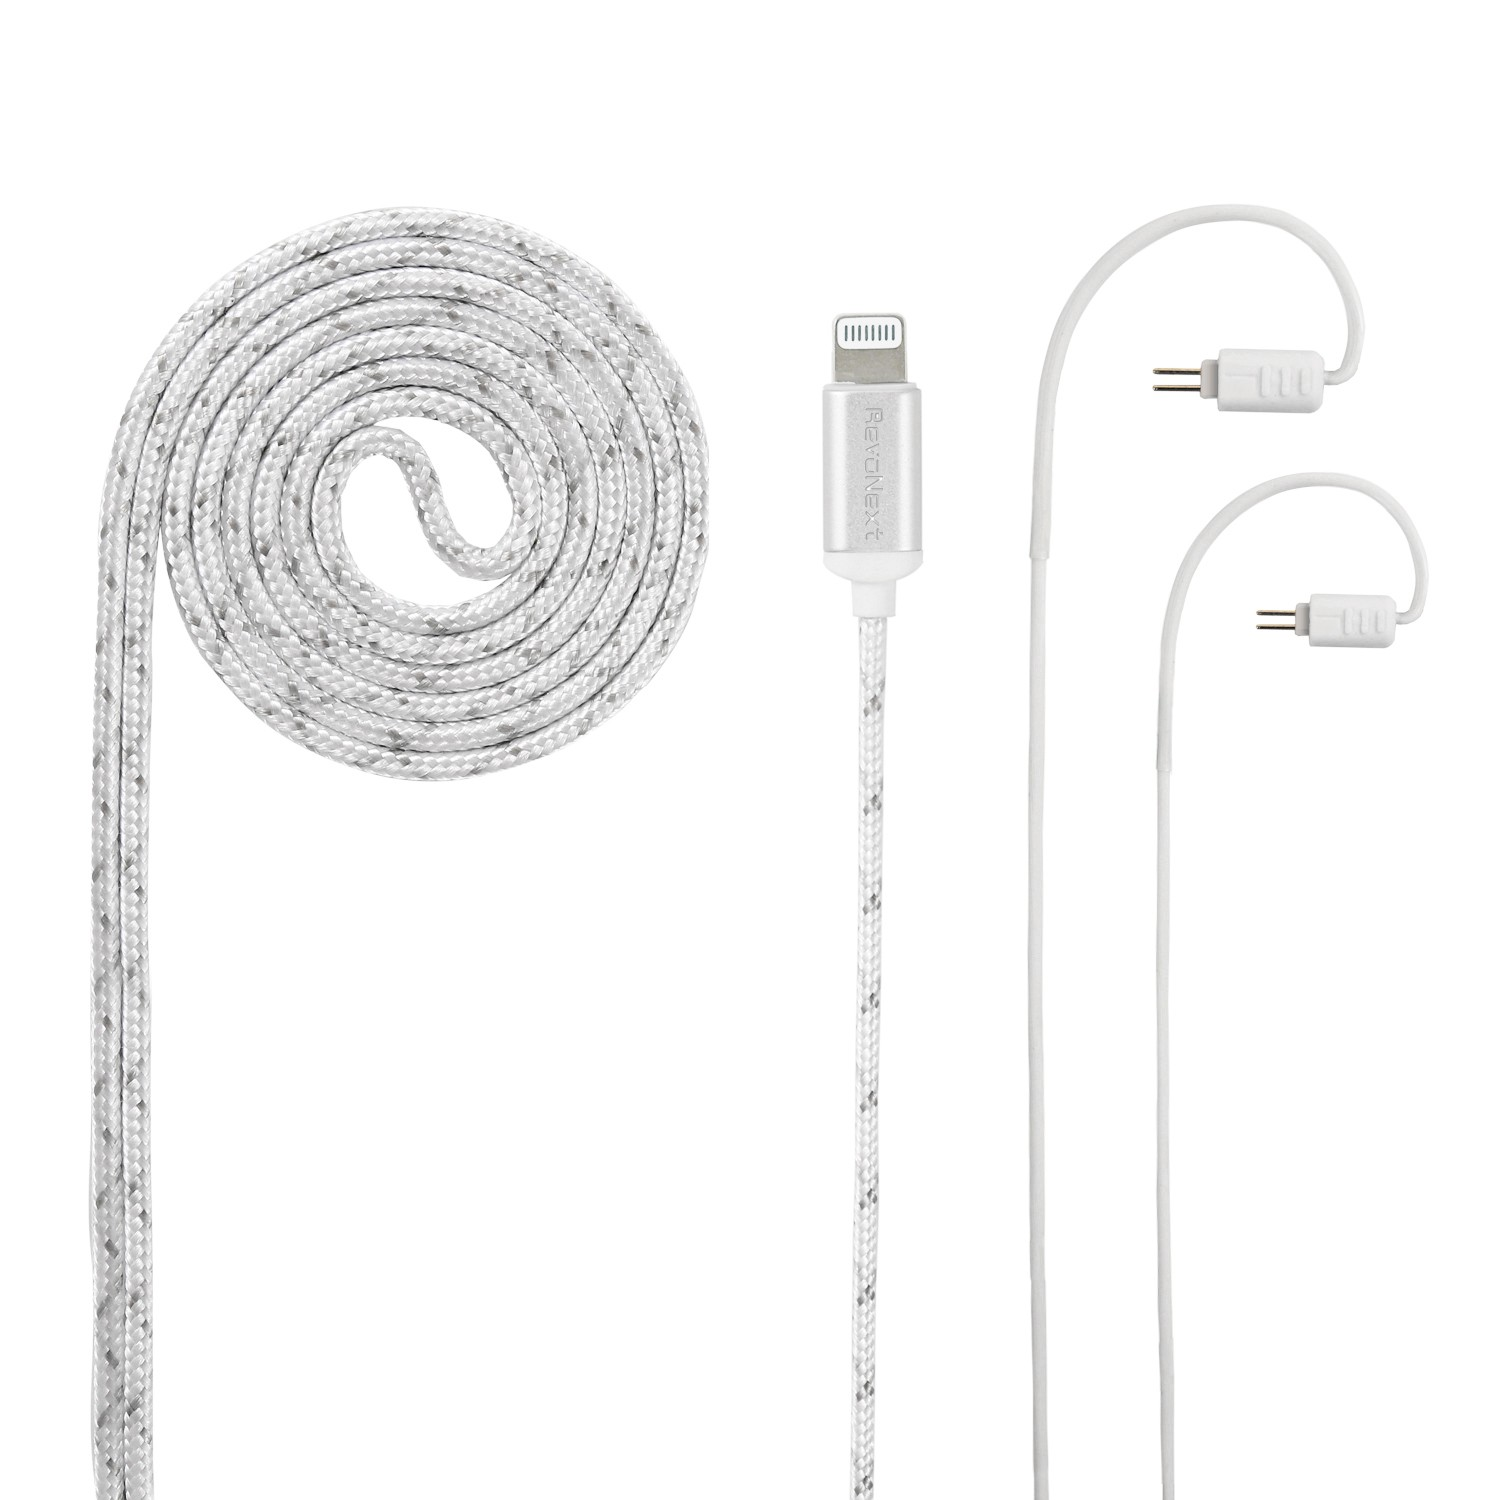 best value lightning cable earphones bulk buy for headphone-8